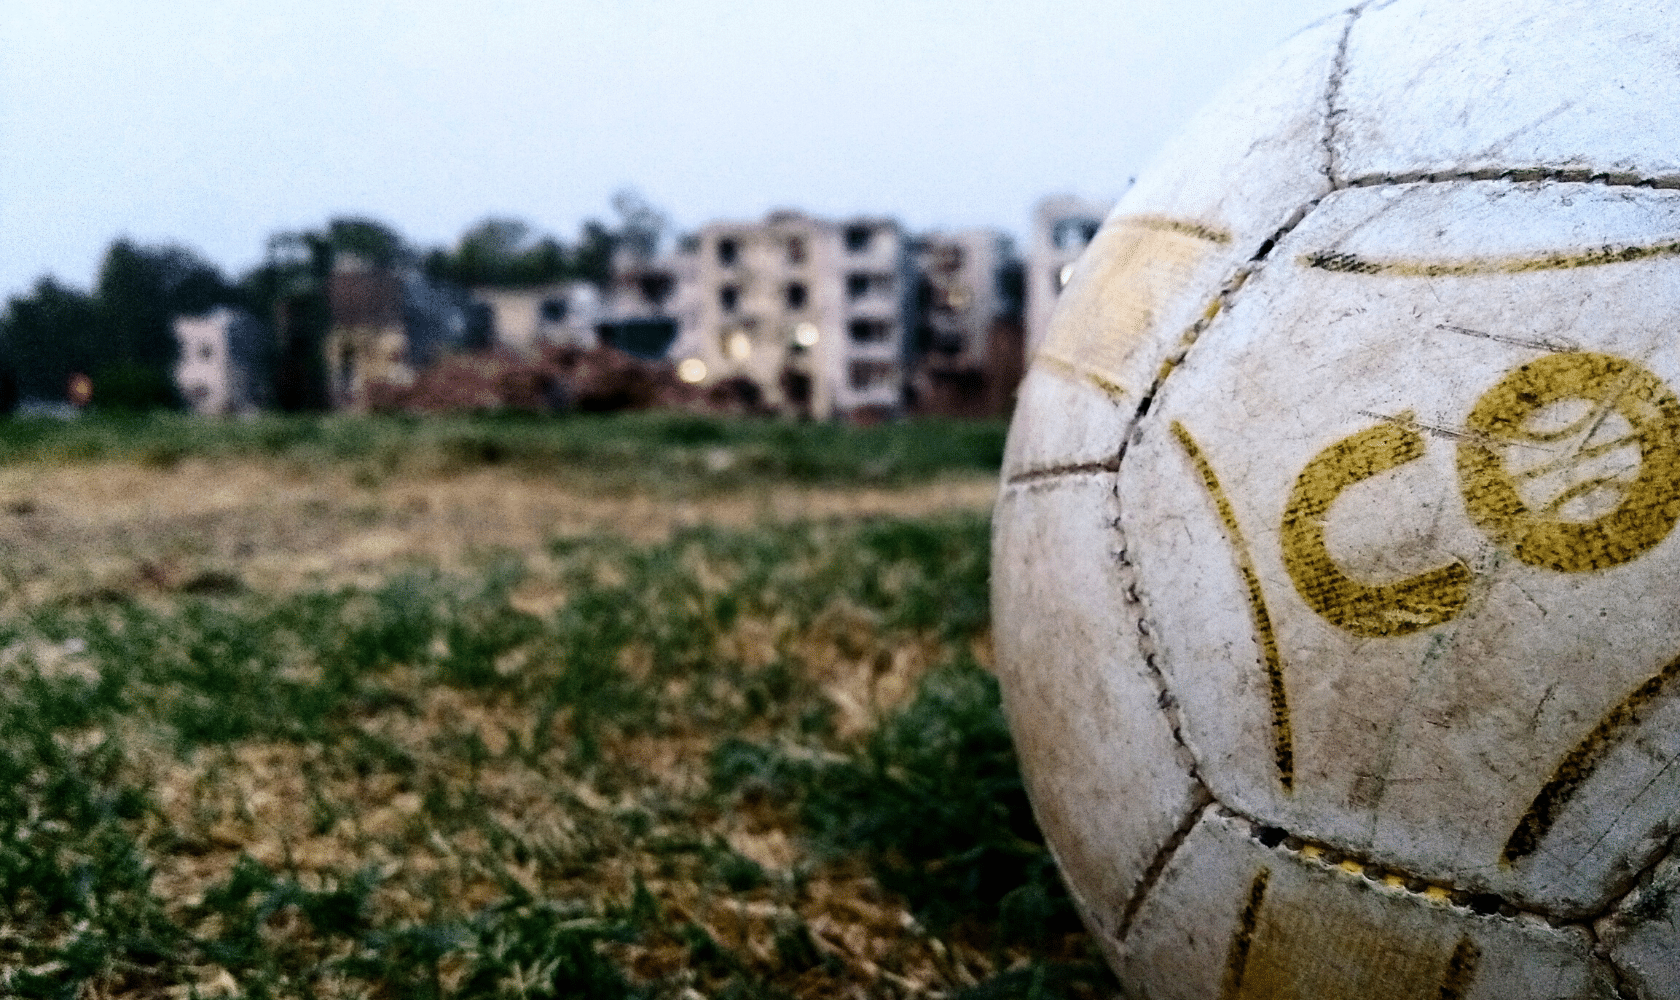 old soccer ball in field